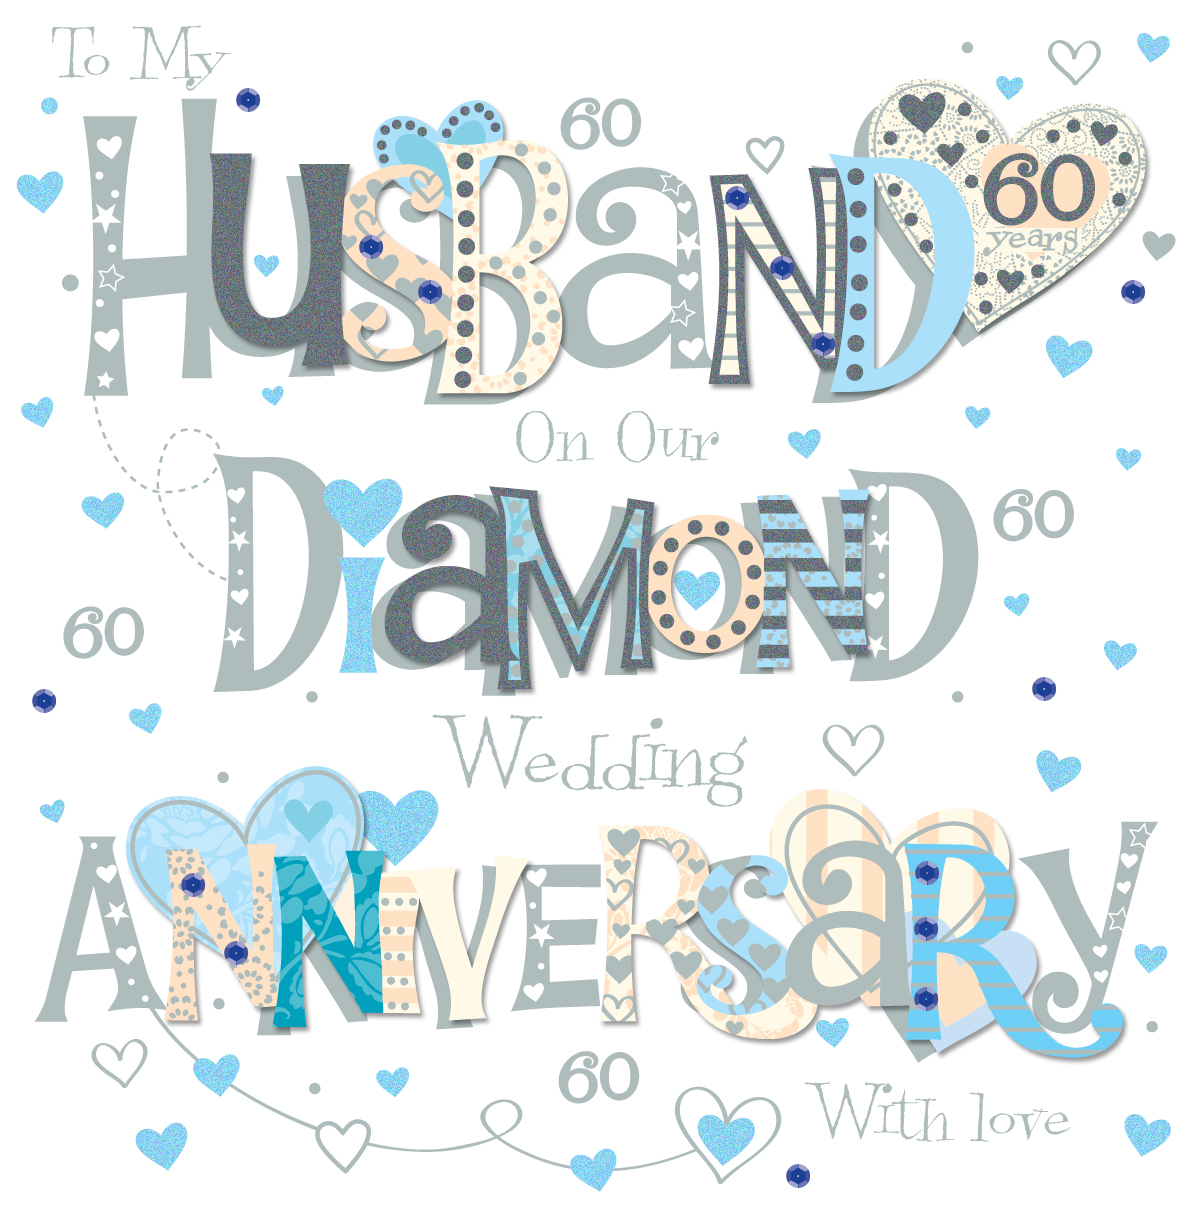 Husband diamond 60th wedding anniversary greeting card cards husband diamond 60th wedding anniversary greeting card kristyandbryce Choice Image